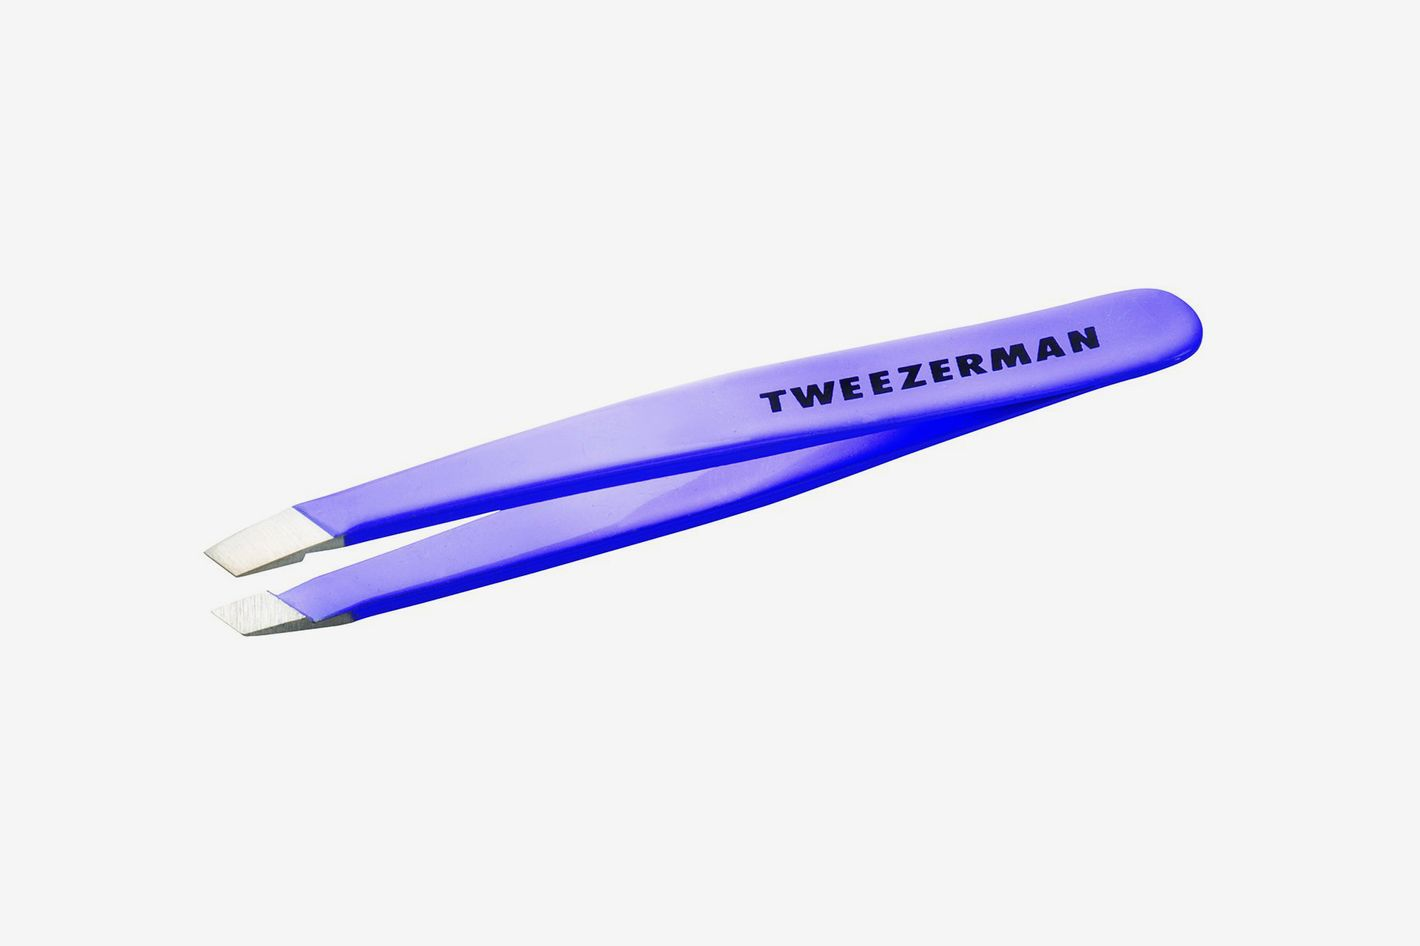 Tweezerman Mini Slant Tweezer in a Tube